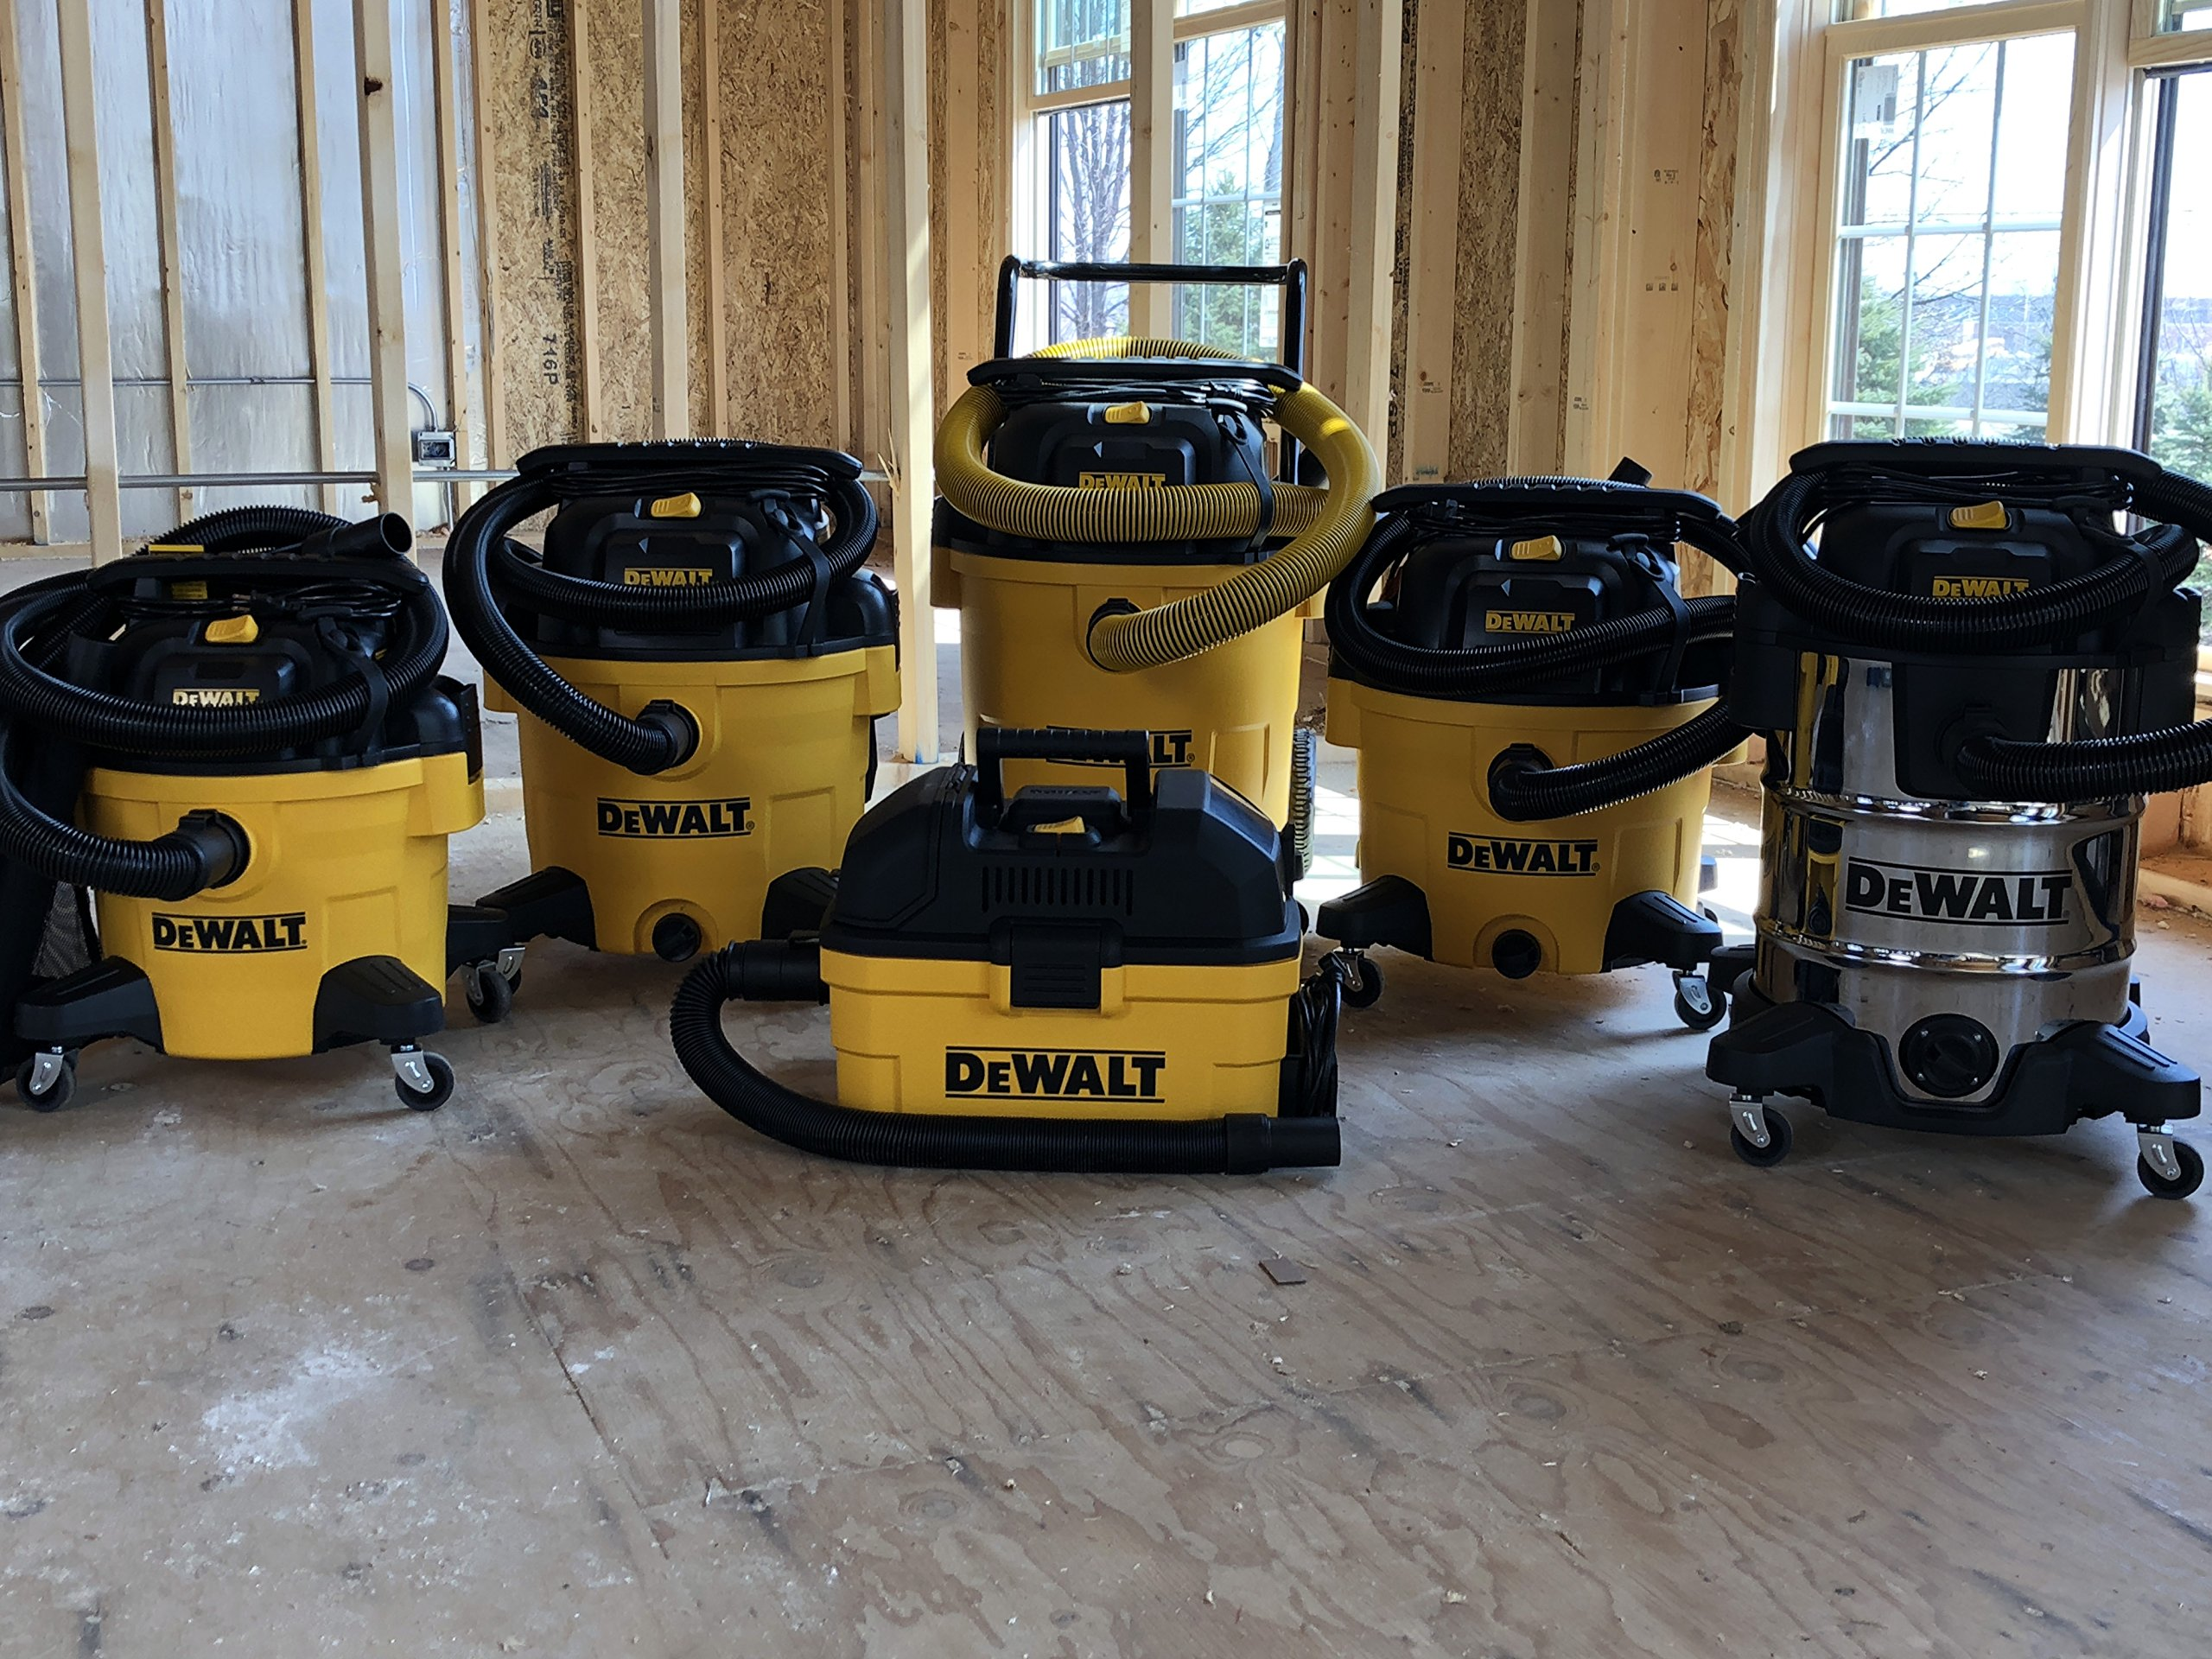 DeWALT 14 Gallon Poly Wet/Dry Vac by DEWALT (Image #4)